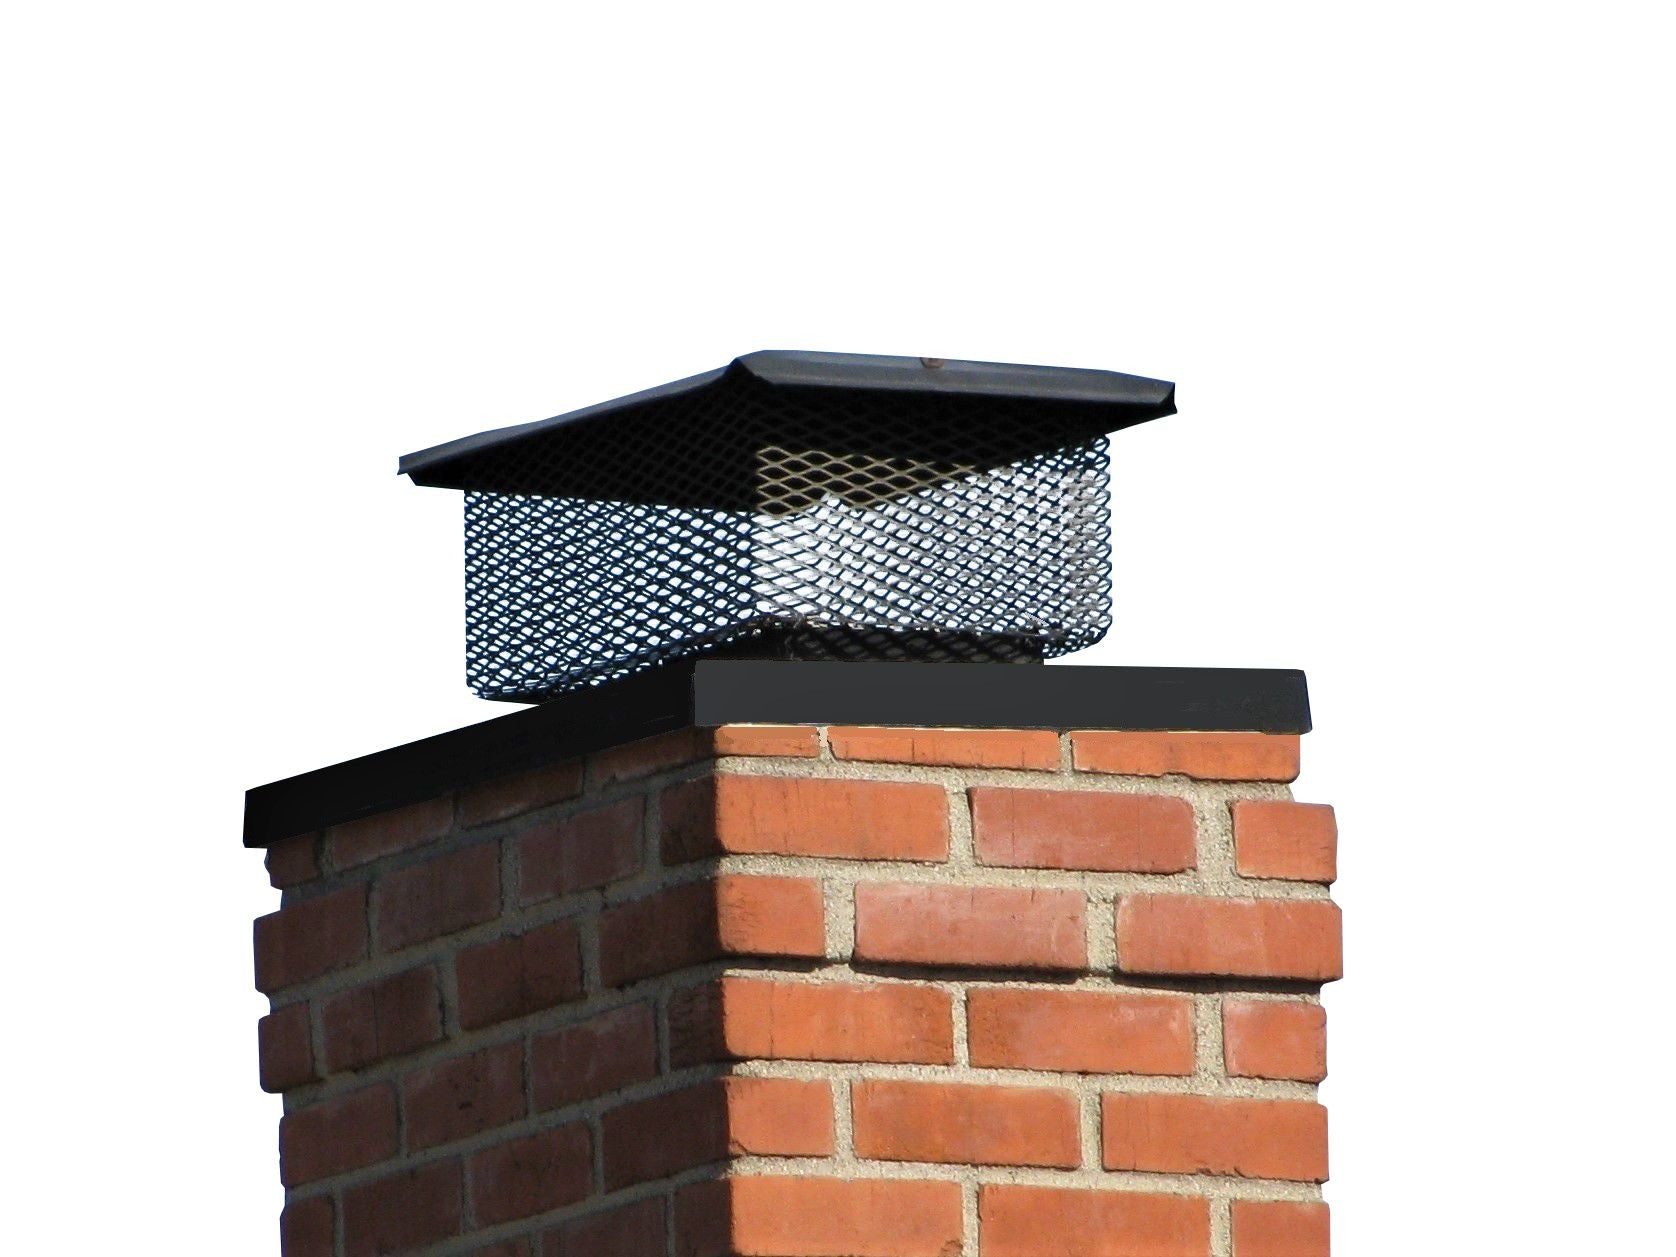 chase new karenefoley fireplace ever choosing and porch chimney ideal cap